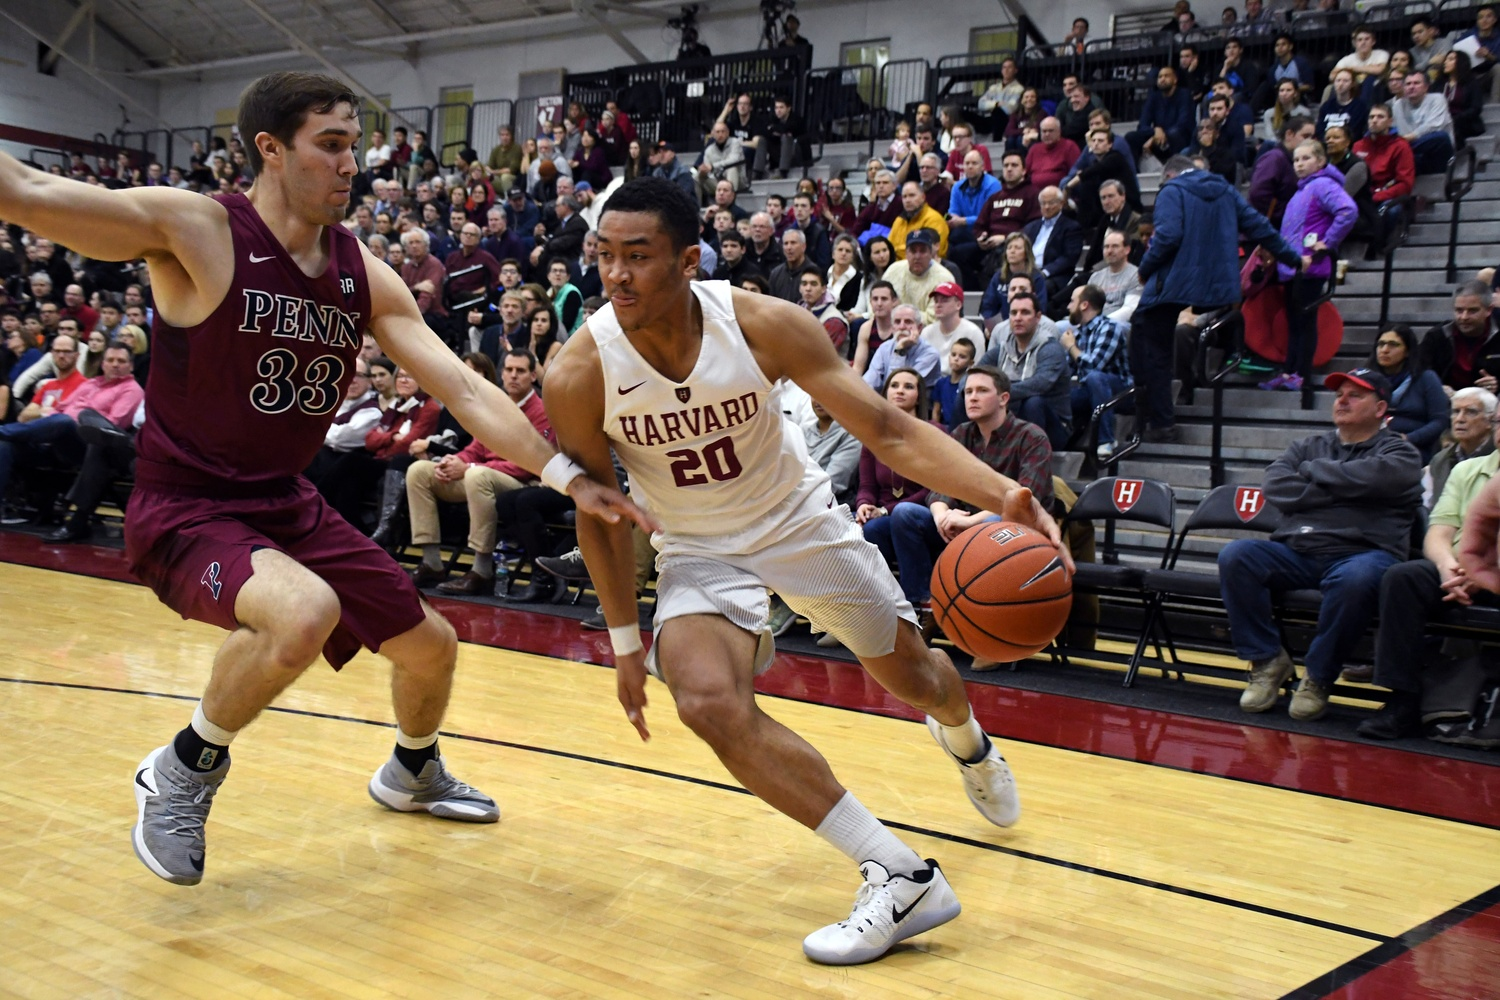 Freshman wing Justin Bassey had 10 points and six rebounds in the Crimson's 69-59 win over Penn.